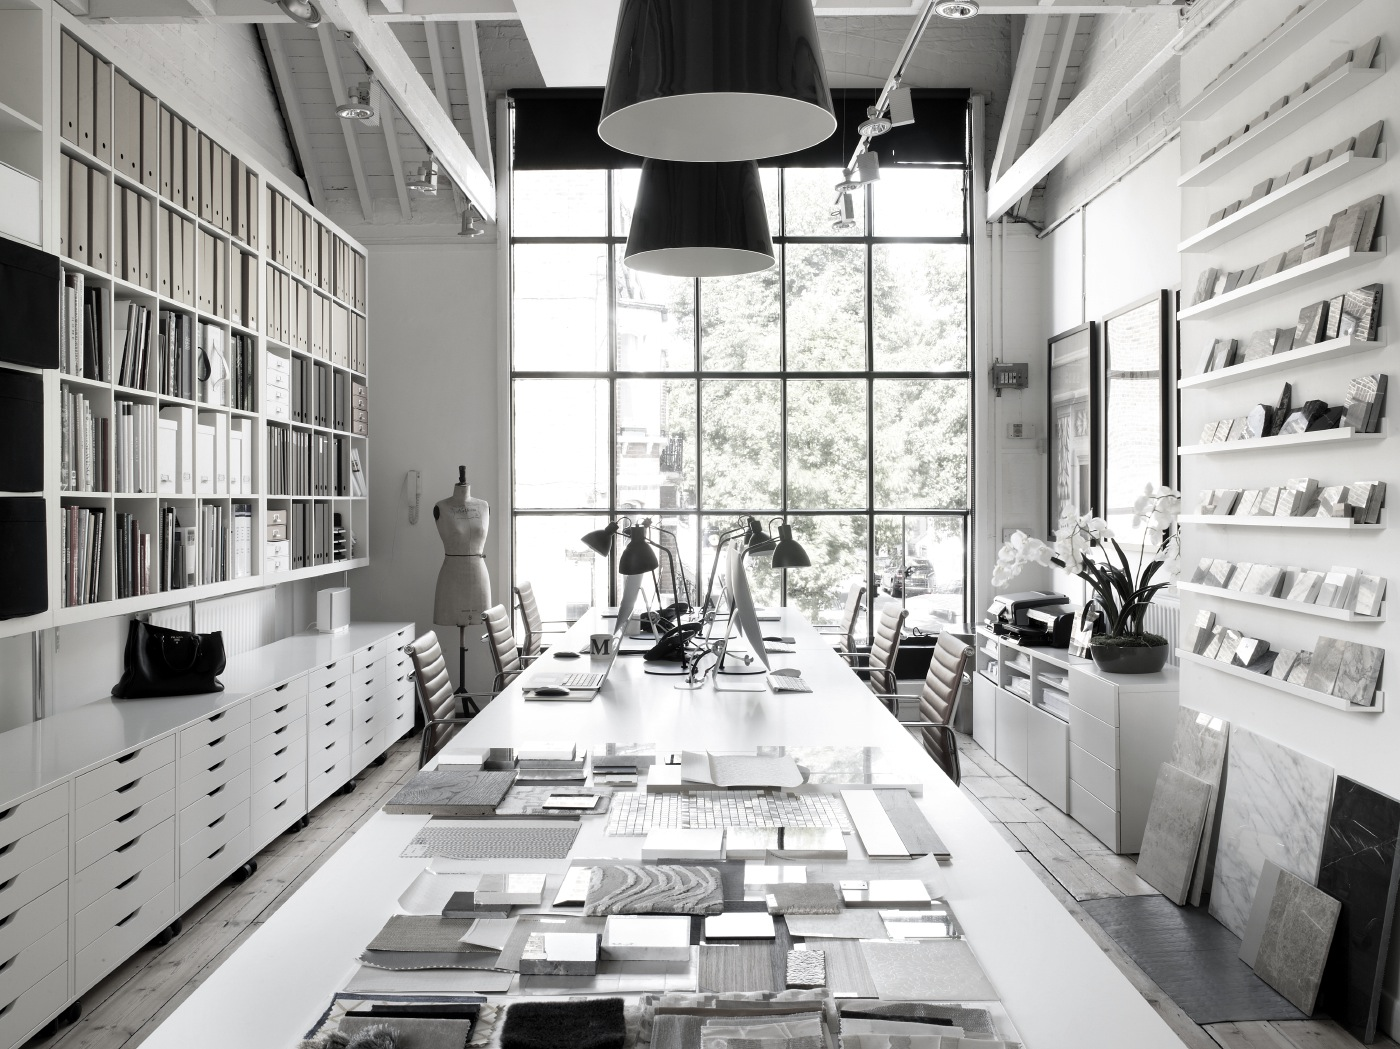 Inspiring creative workspaces - Studio interior design ...